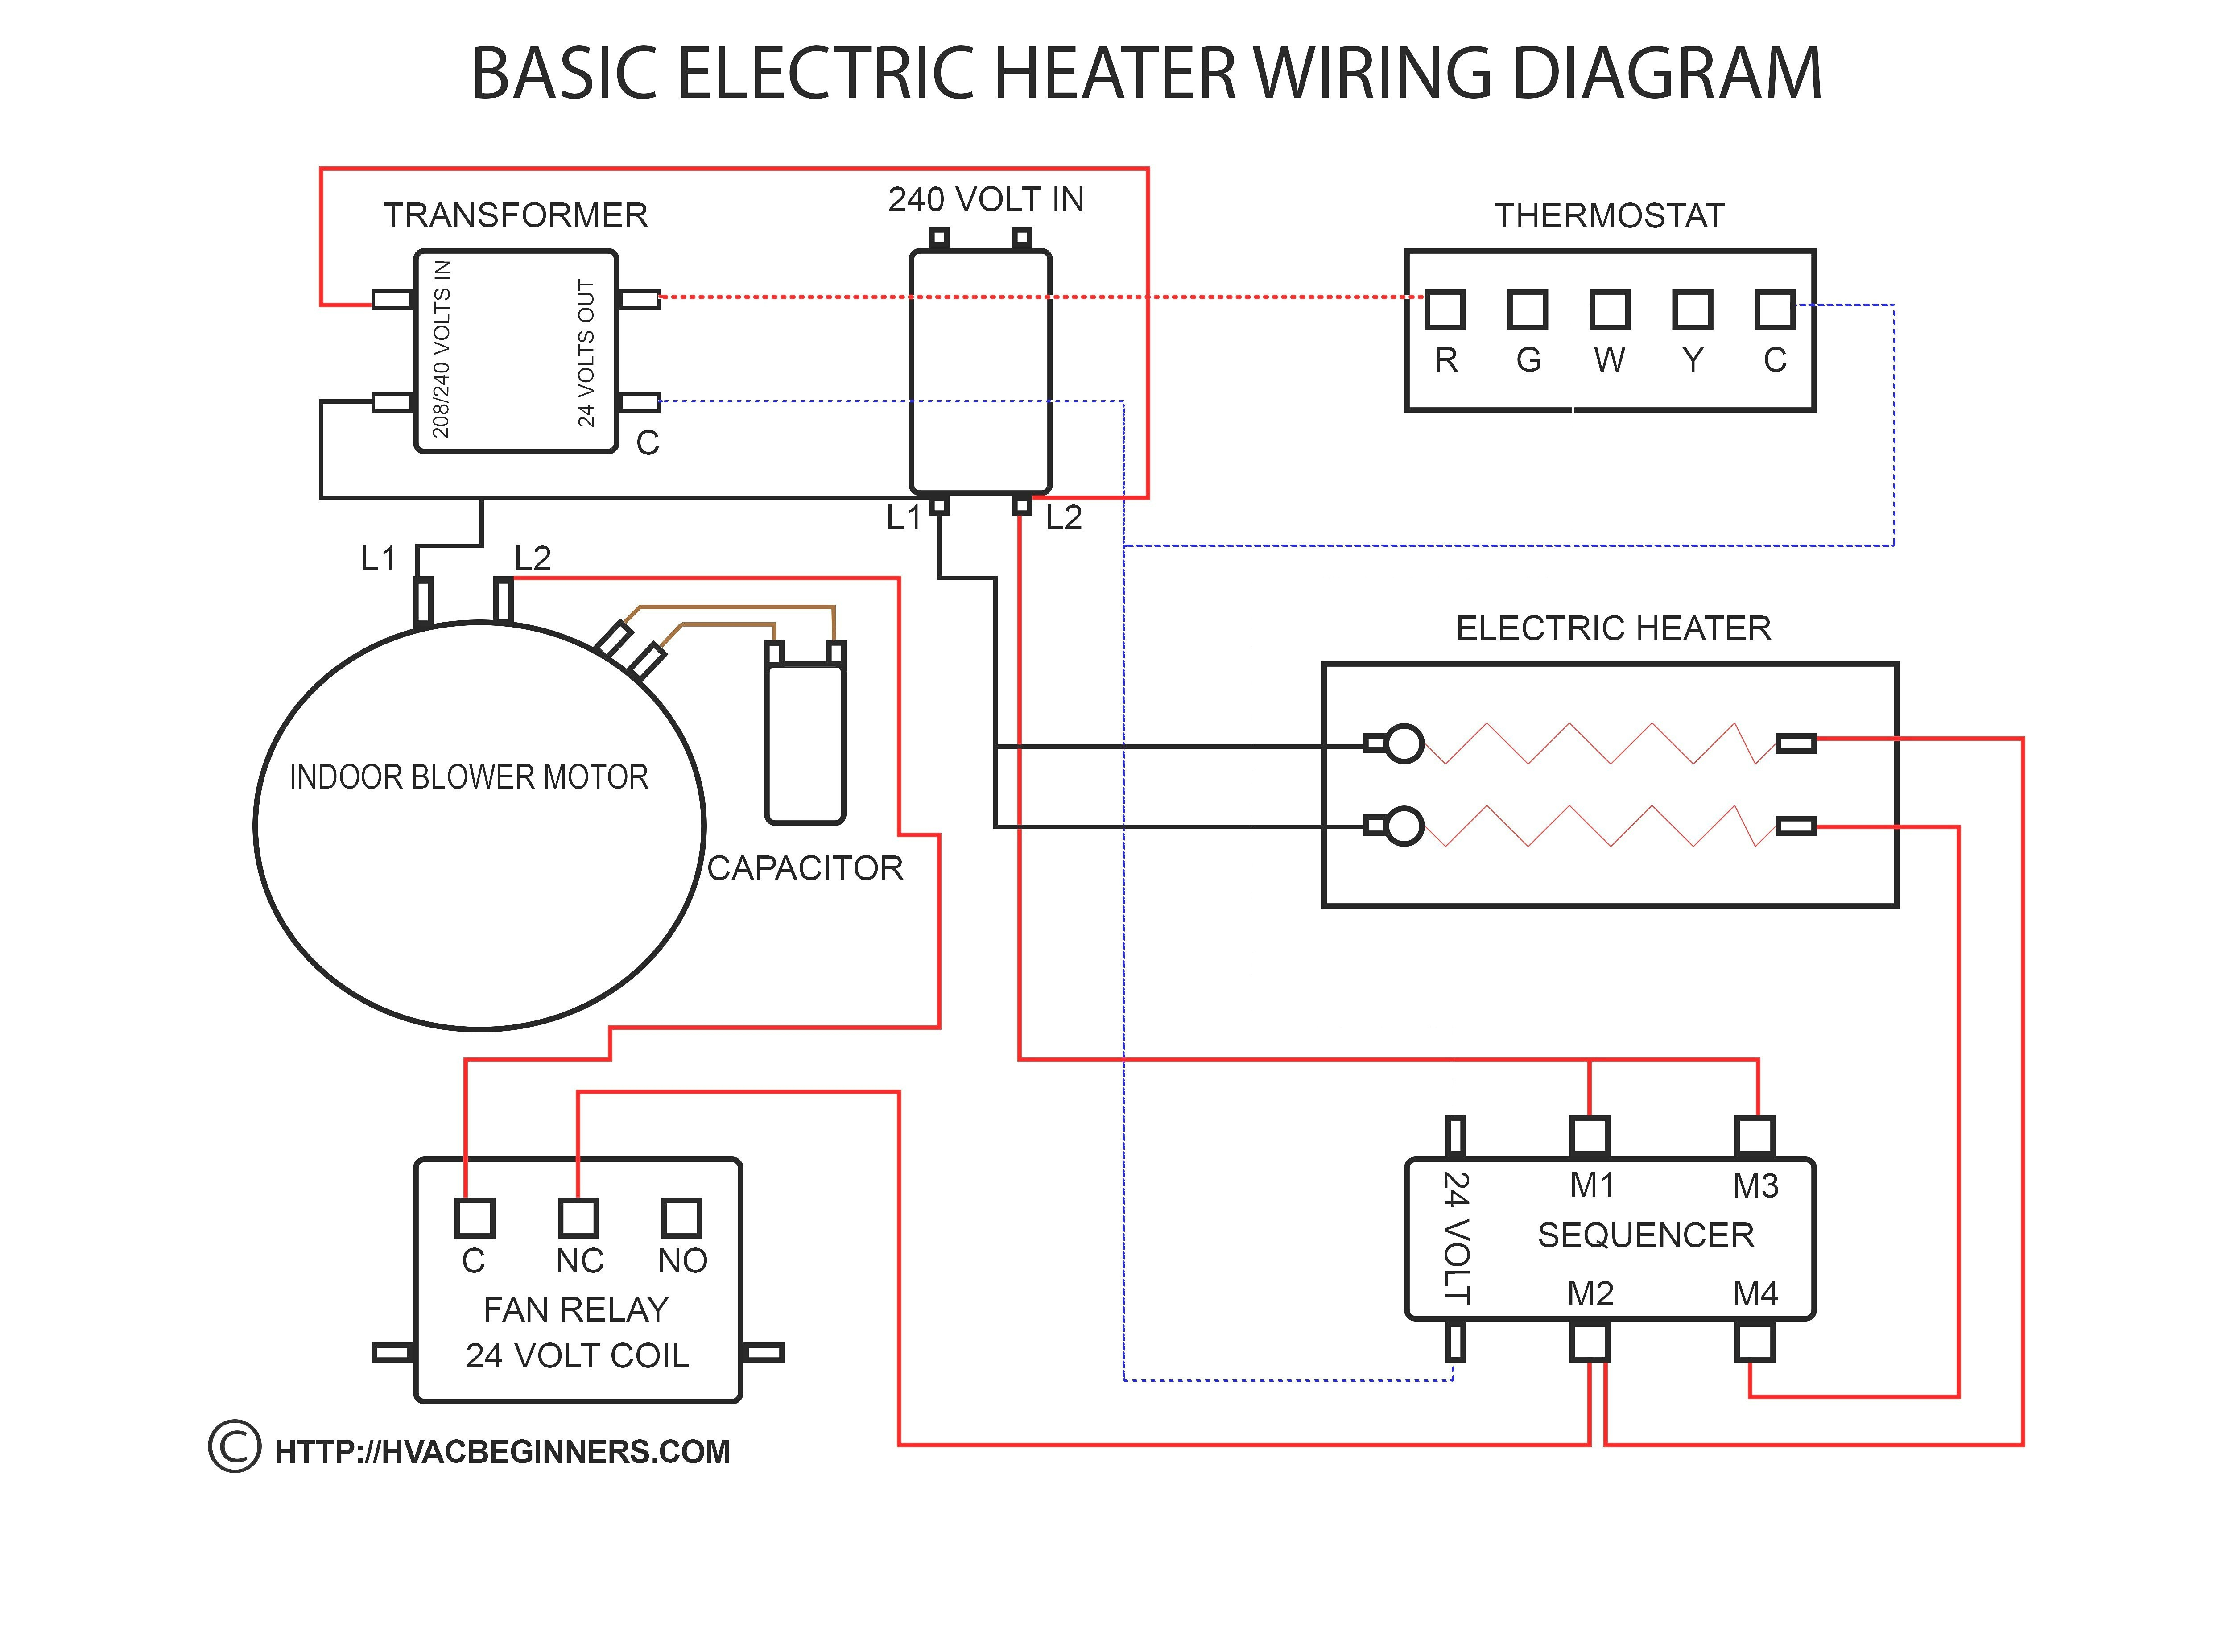 220 Volt Single Phase Wiring Diagram Wiring Diagram Ac Sharp - 240 Volt Single Phase Wiring Diagram